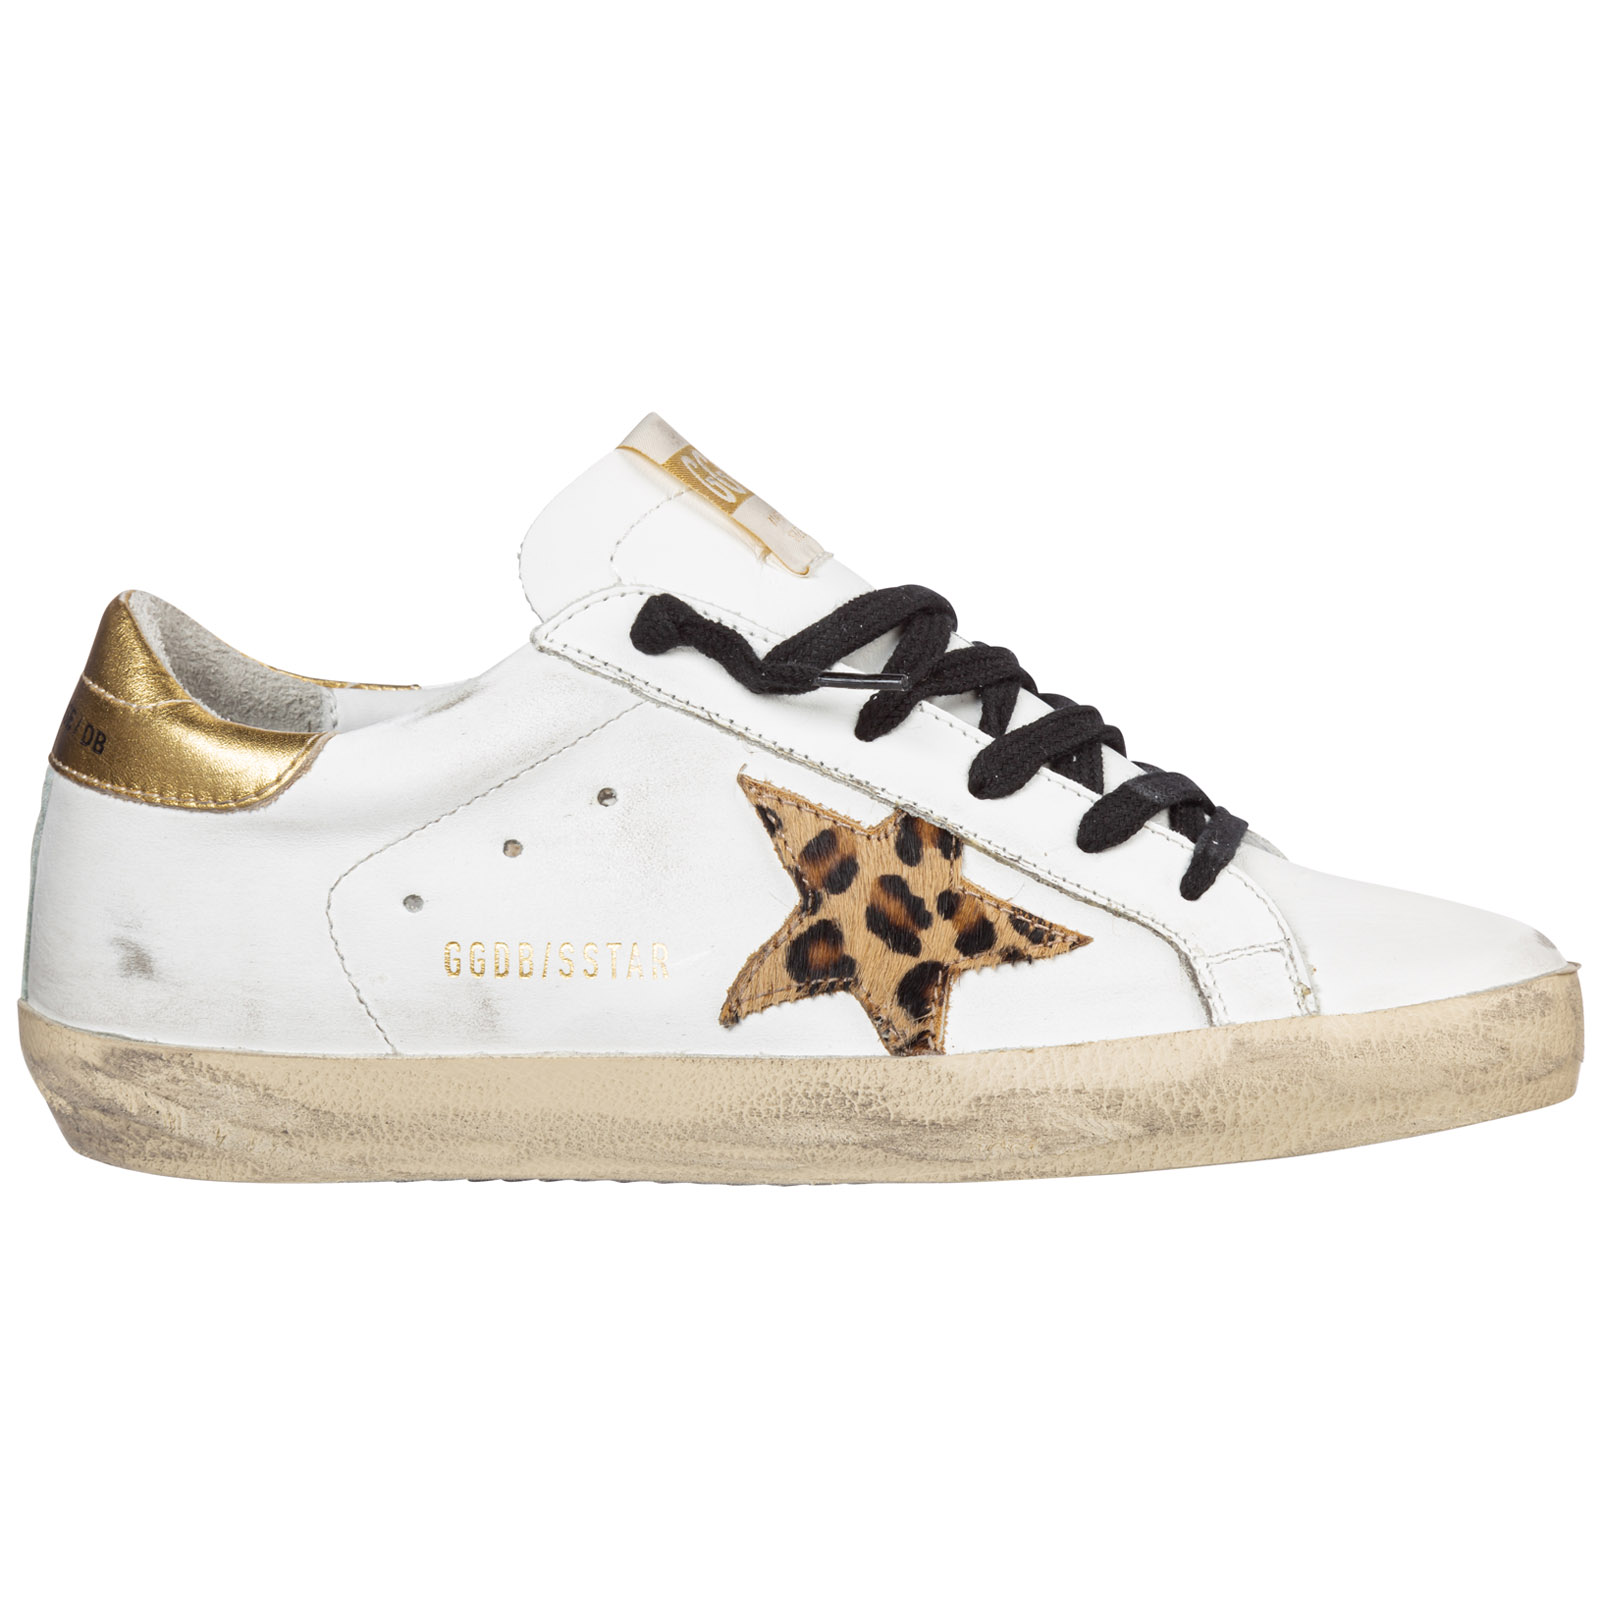 Golden Goose Sneakers WOMEN'S SHOES LEATHER TRAINERS SNEAKERS SUPERSTAR